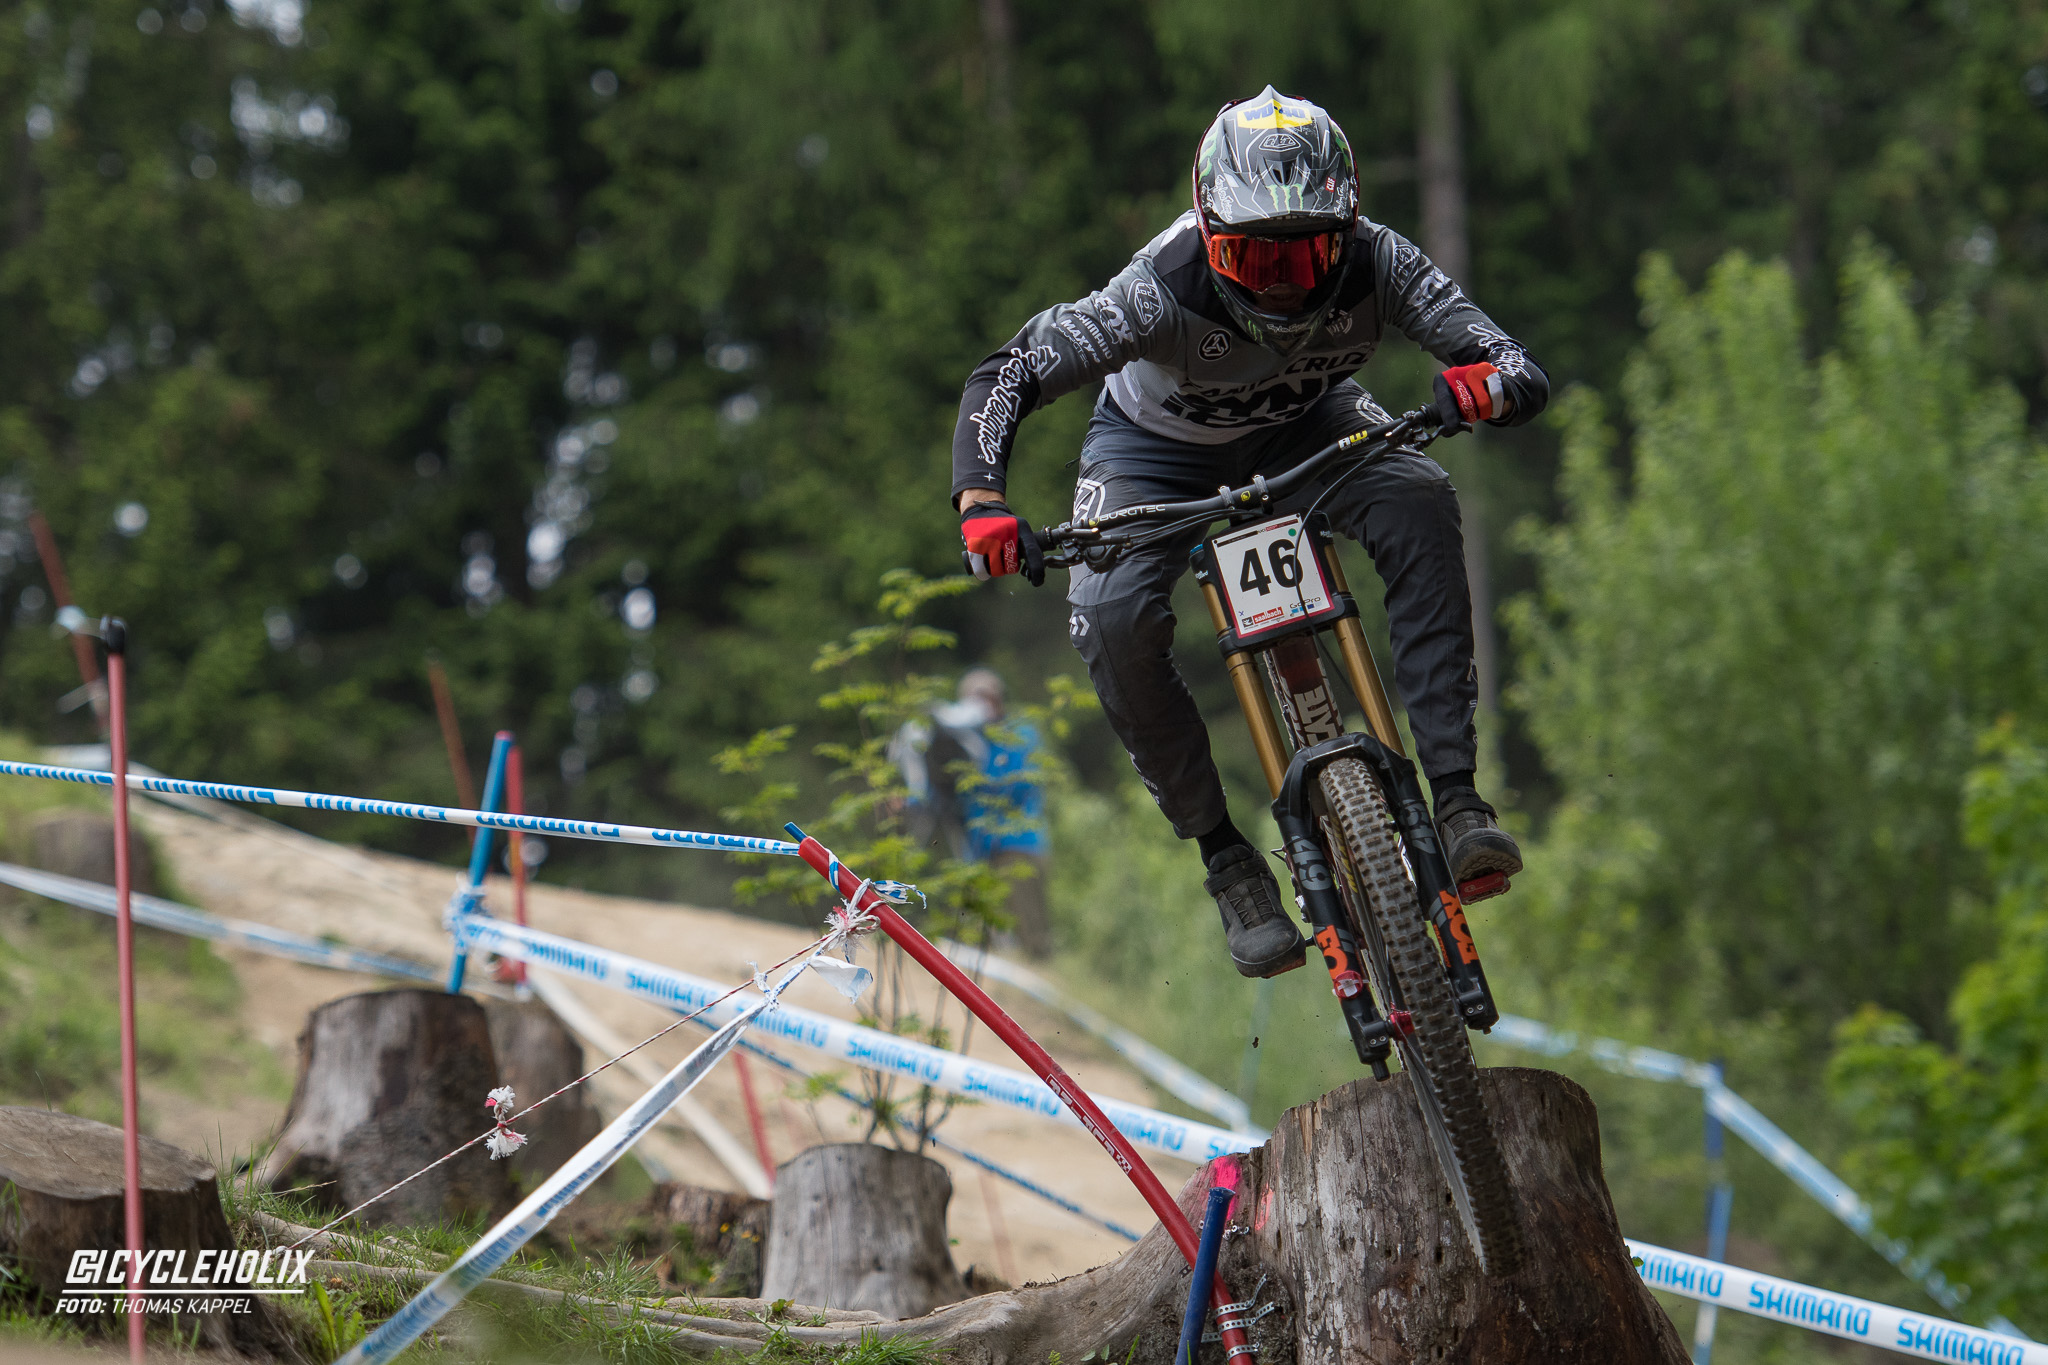 2019 Downhill Worldcup Leogang Finale Action QA 17 Cycleholix